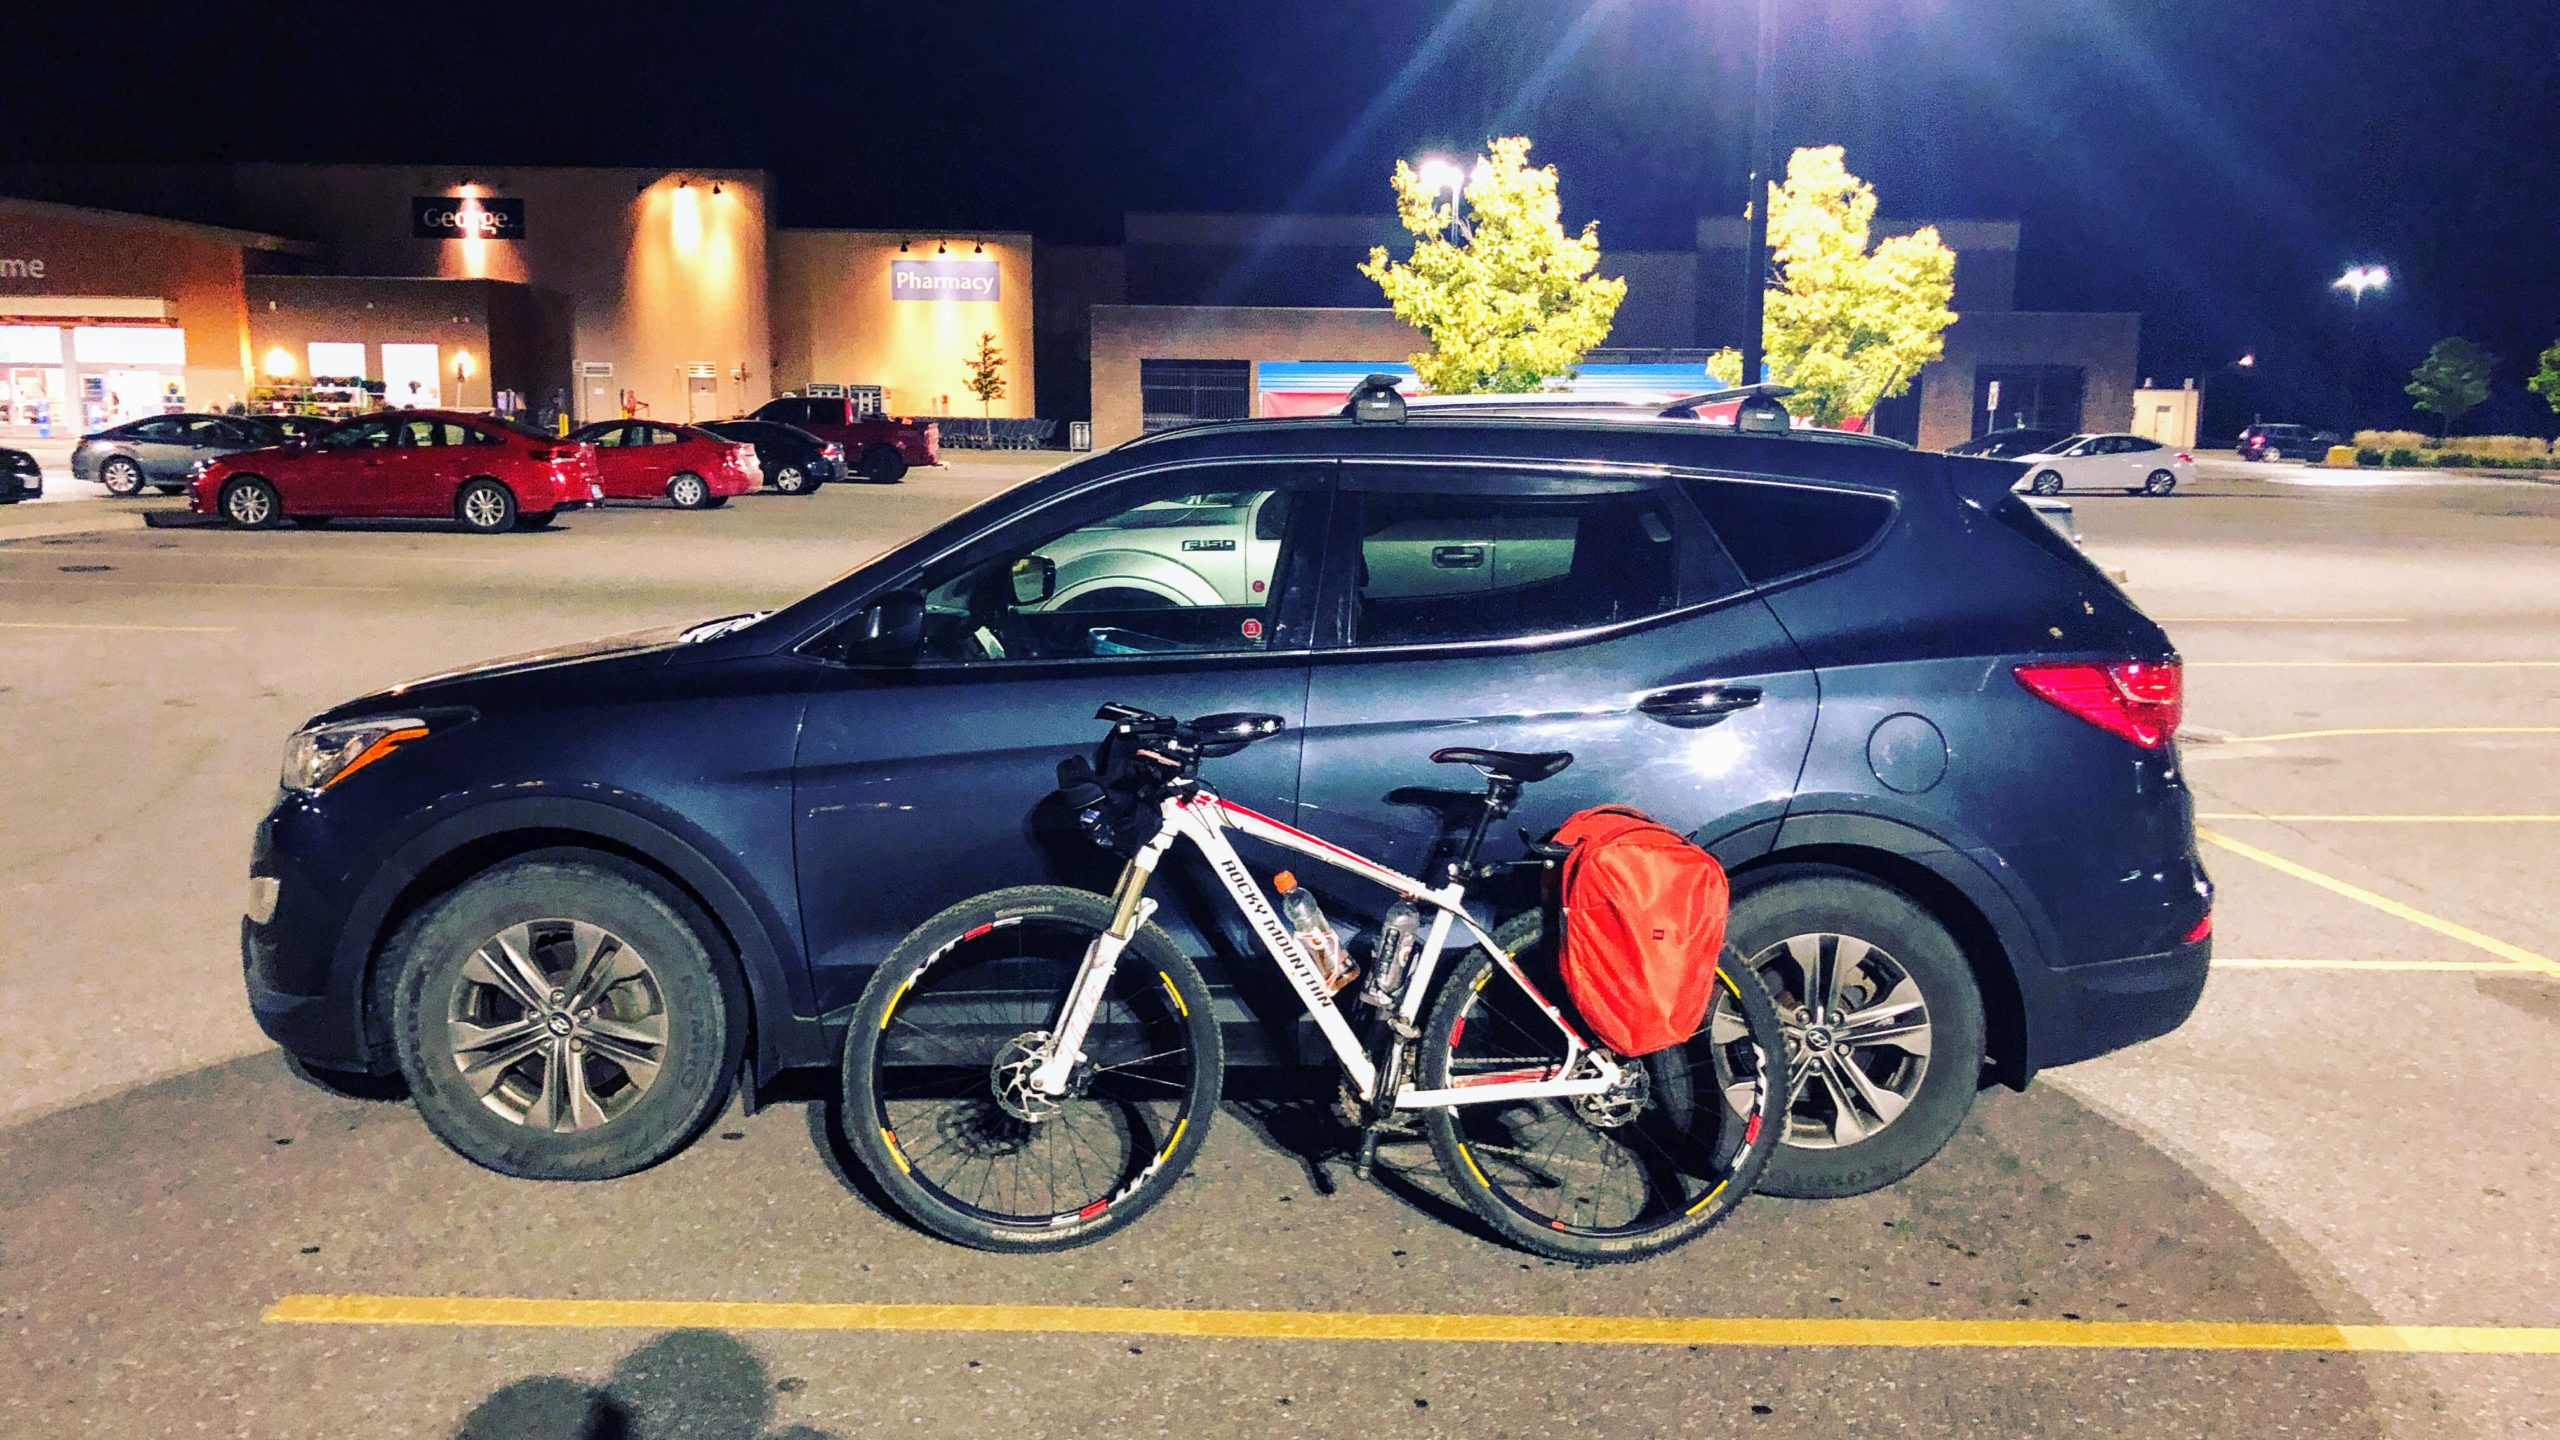 Back at Walmart with my bike resting against the car, finished the 2021 Durham Destroyer.